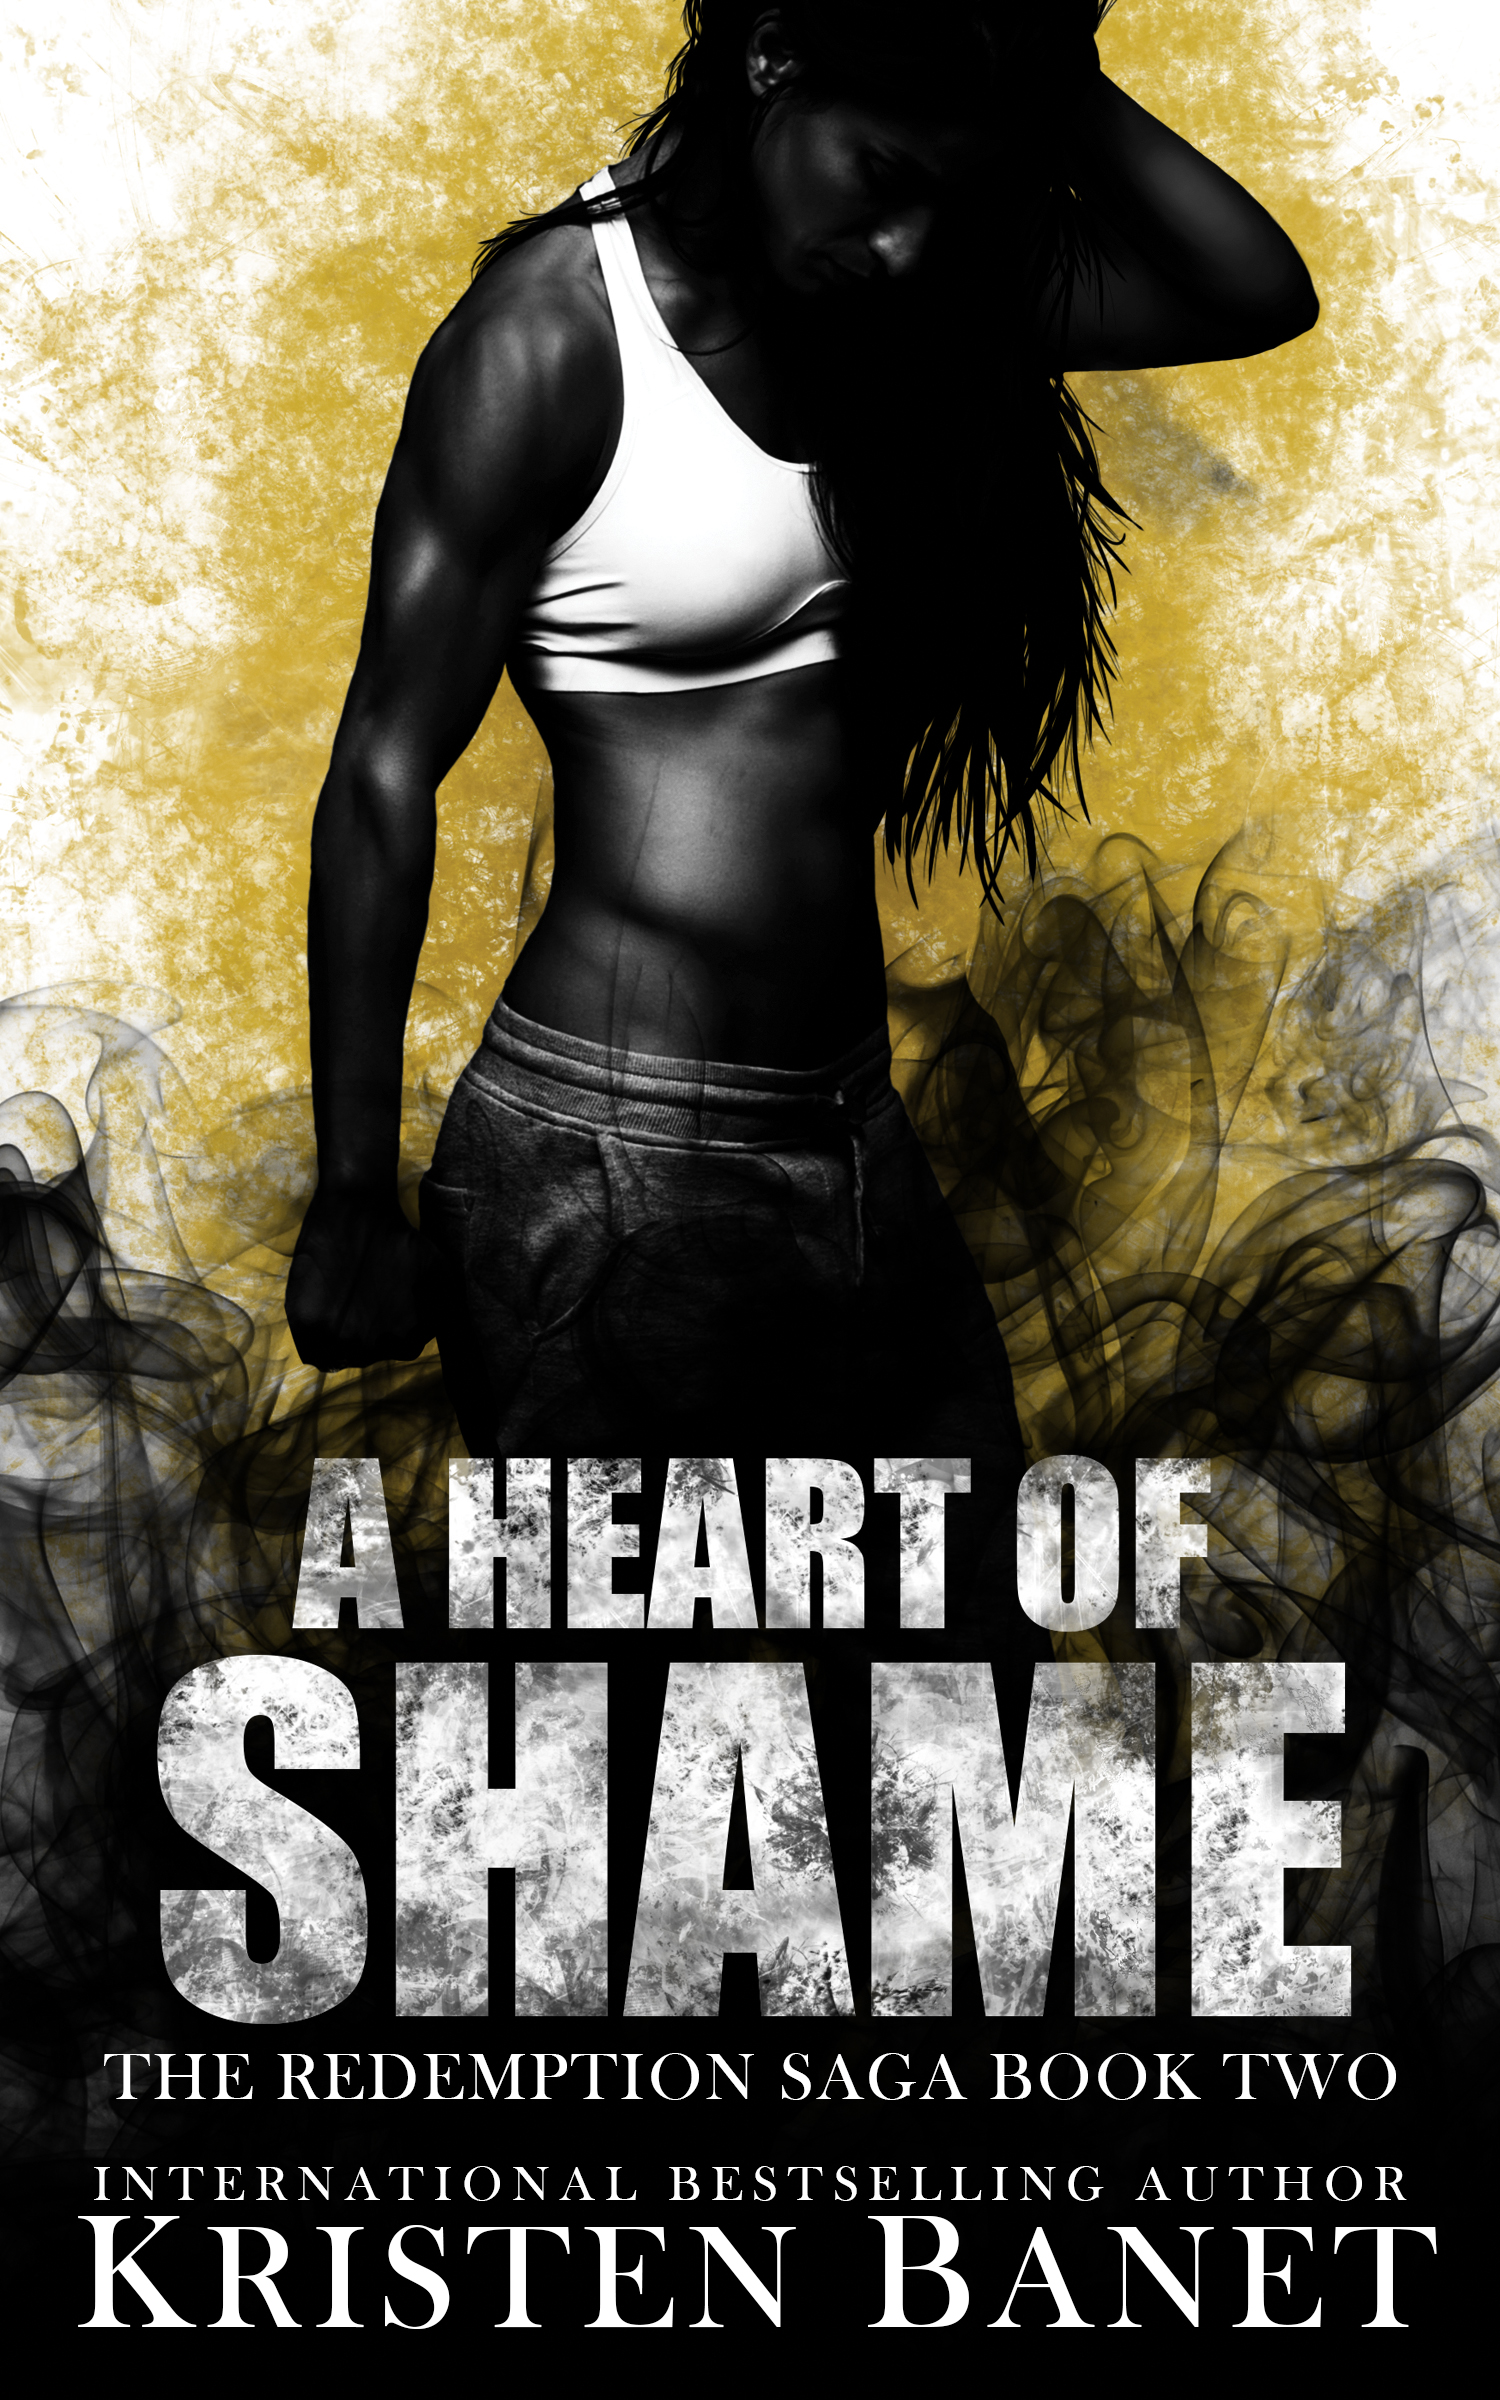 A Heart of Shame, Redemption Saga Book Two by Kristen Banet